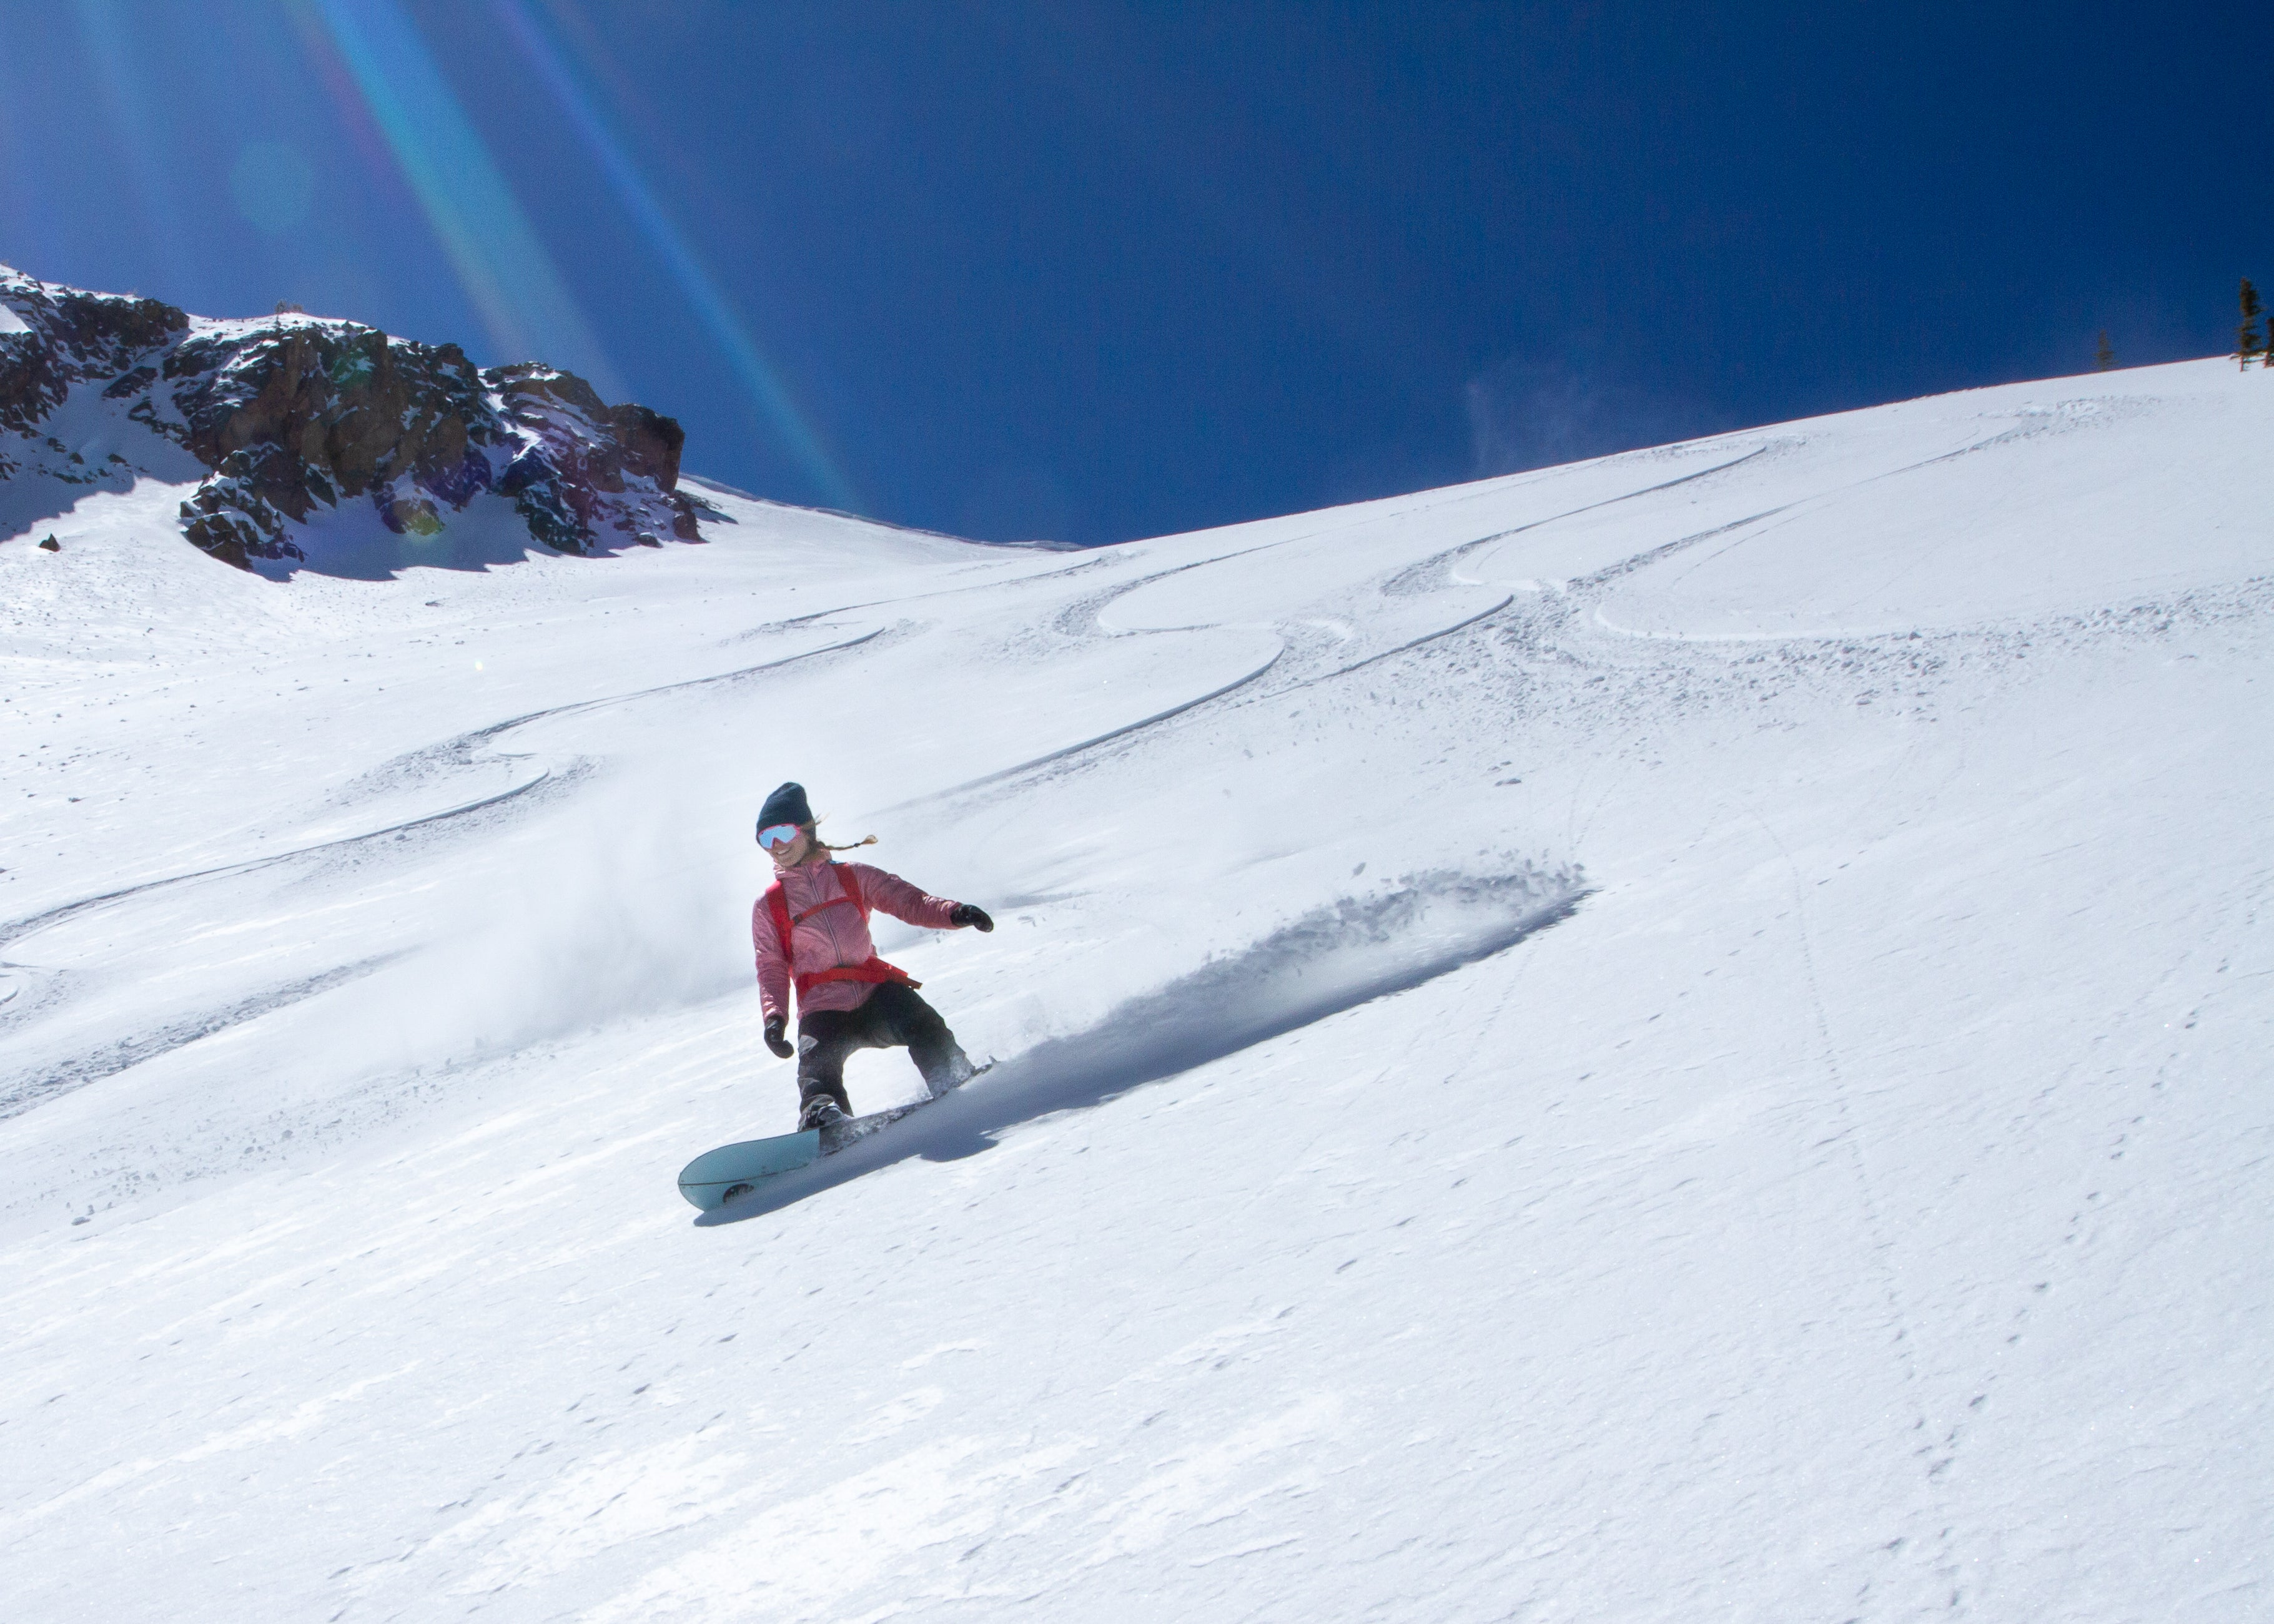 Snowboarder frontside  on Independence Pass